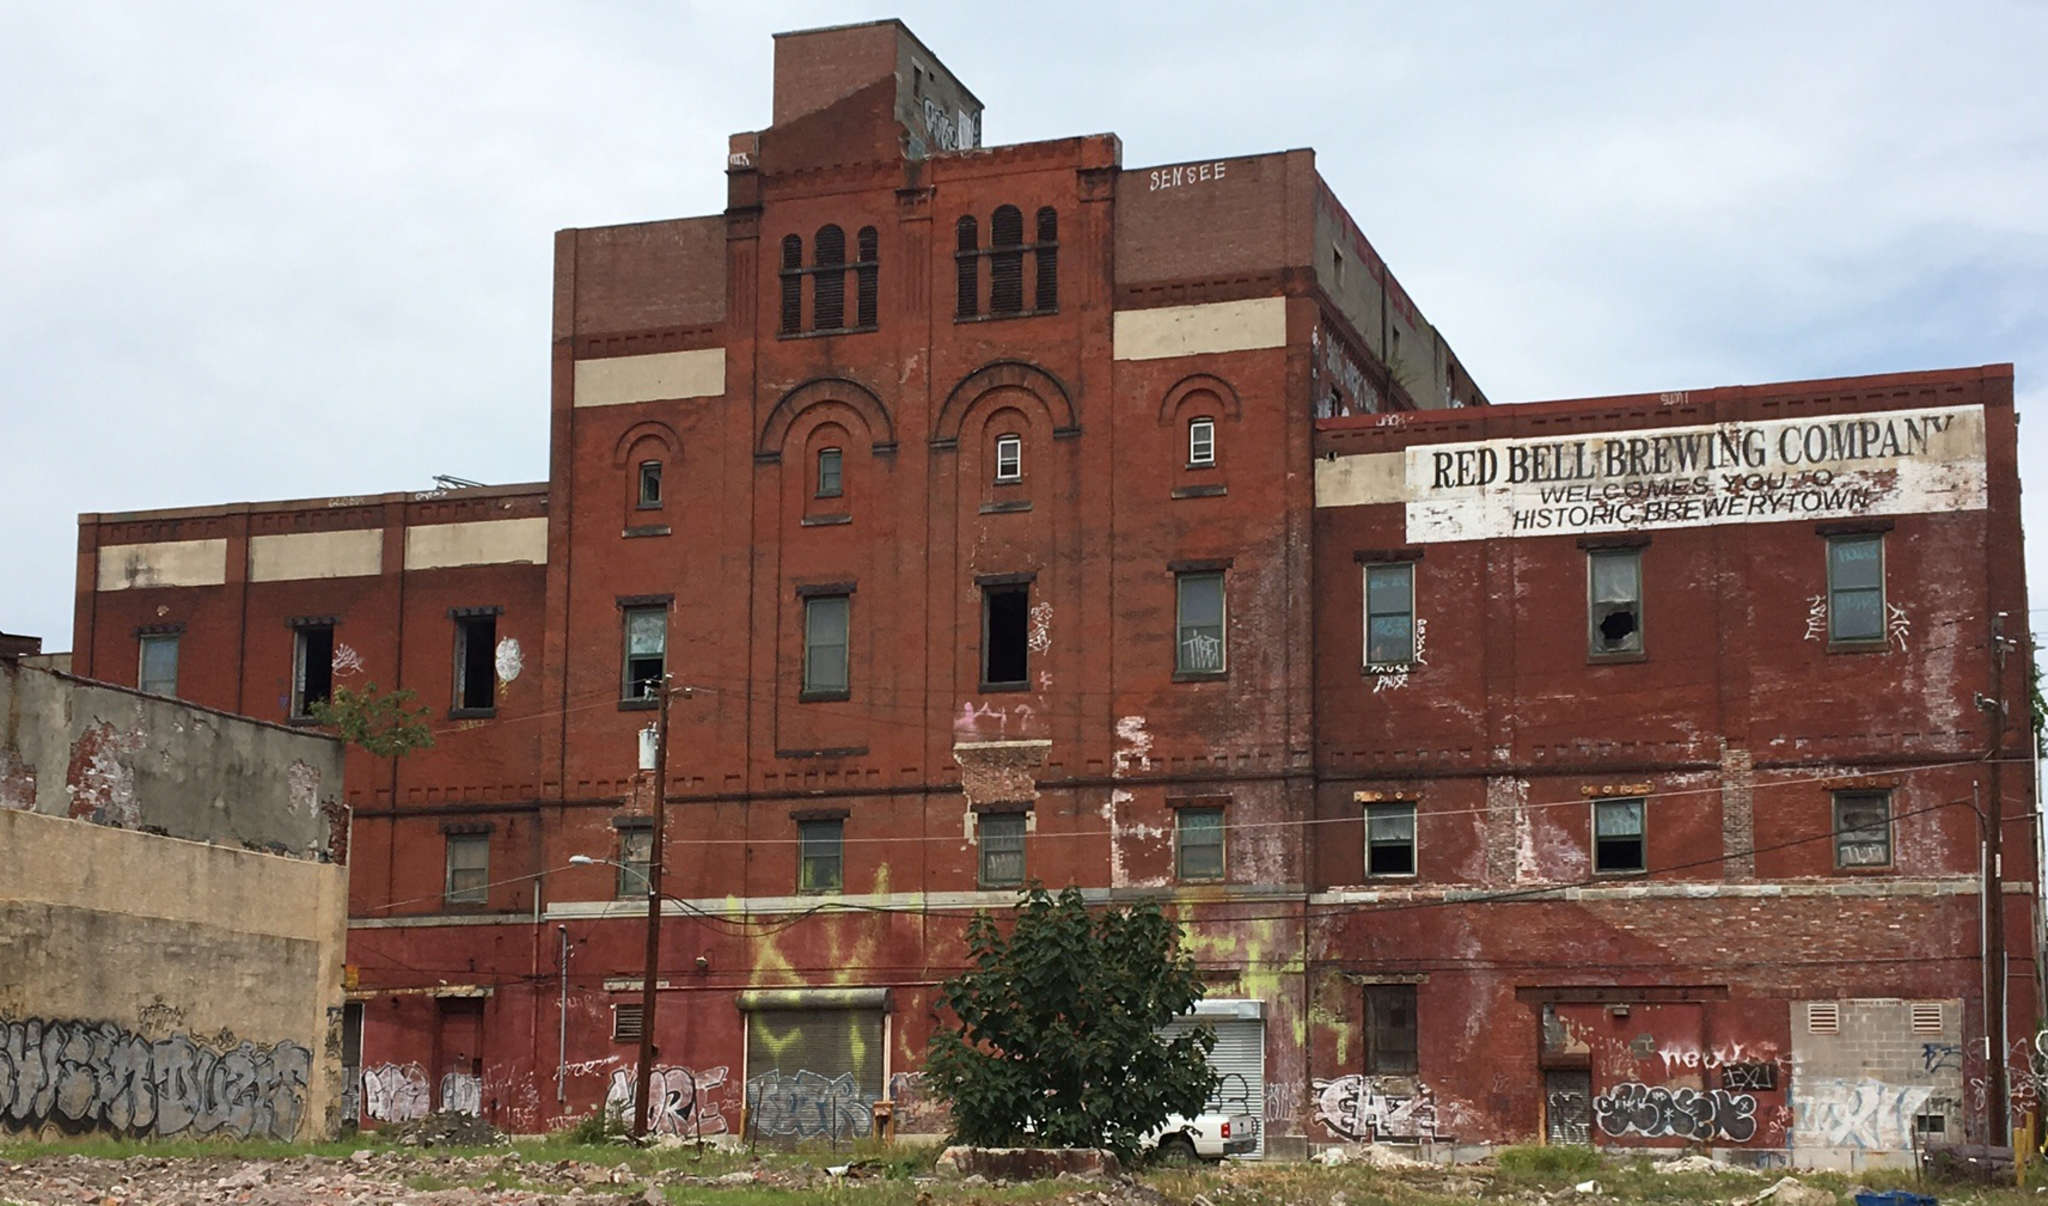 The former brewery, with its five-story central hall, three-story wings, and arched windows that draw the eye upward, has recently been sold to a developer.